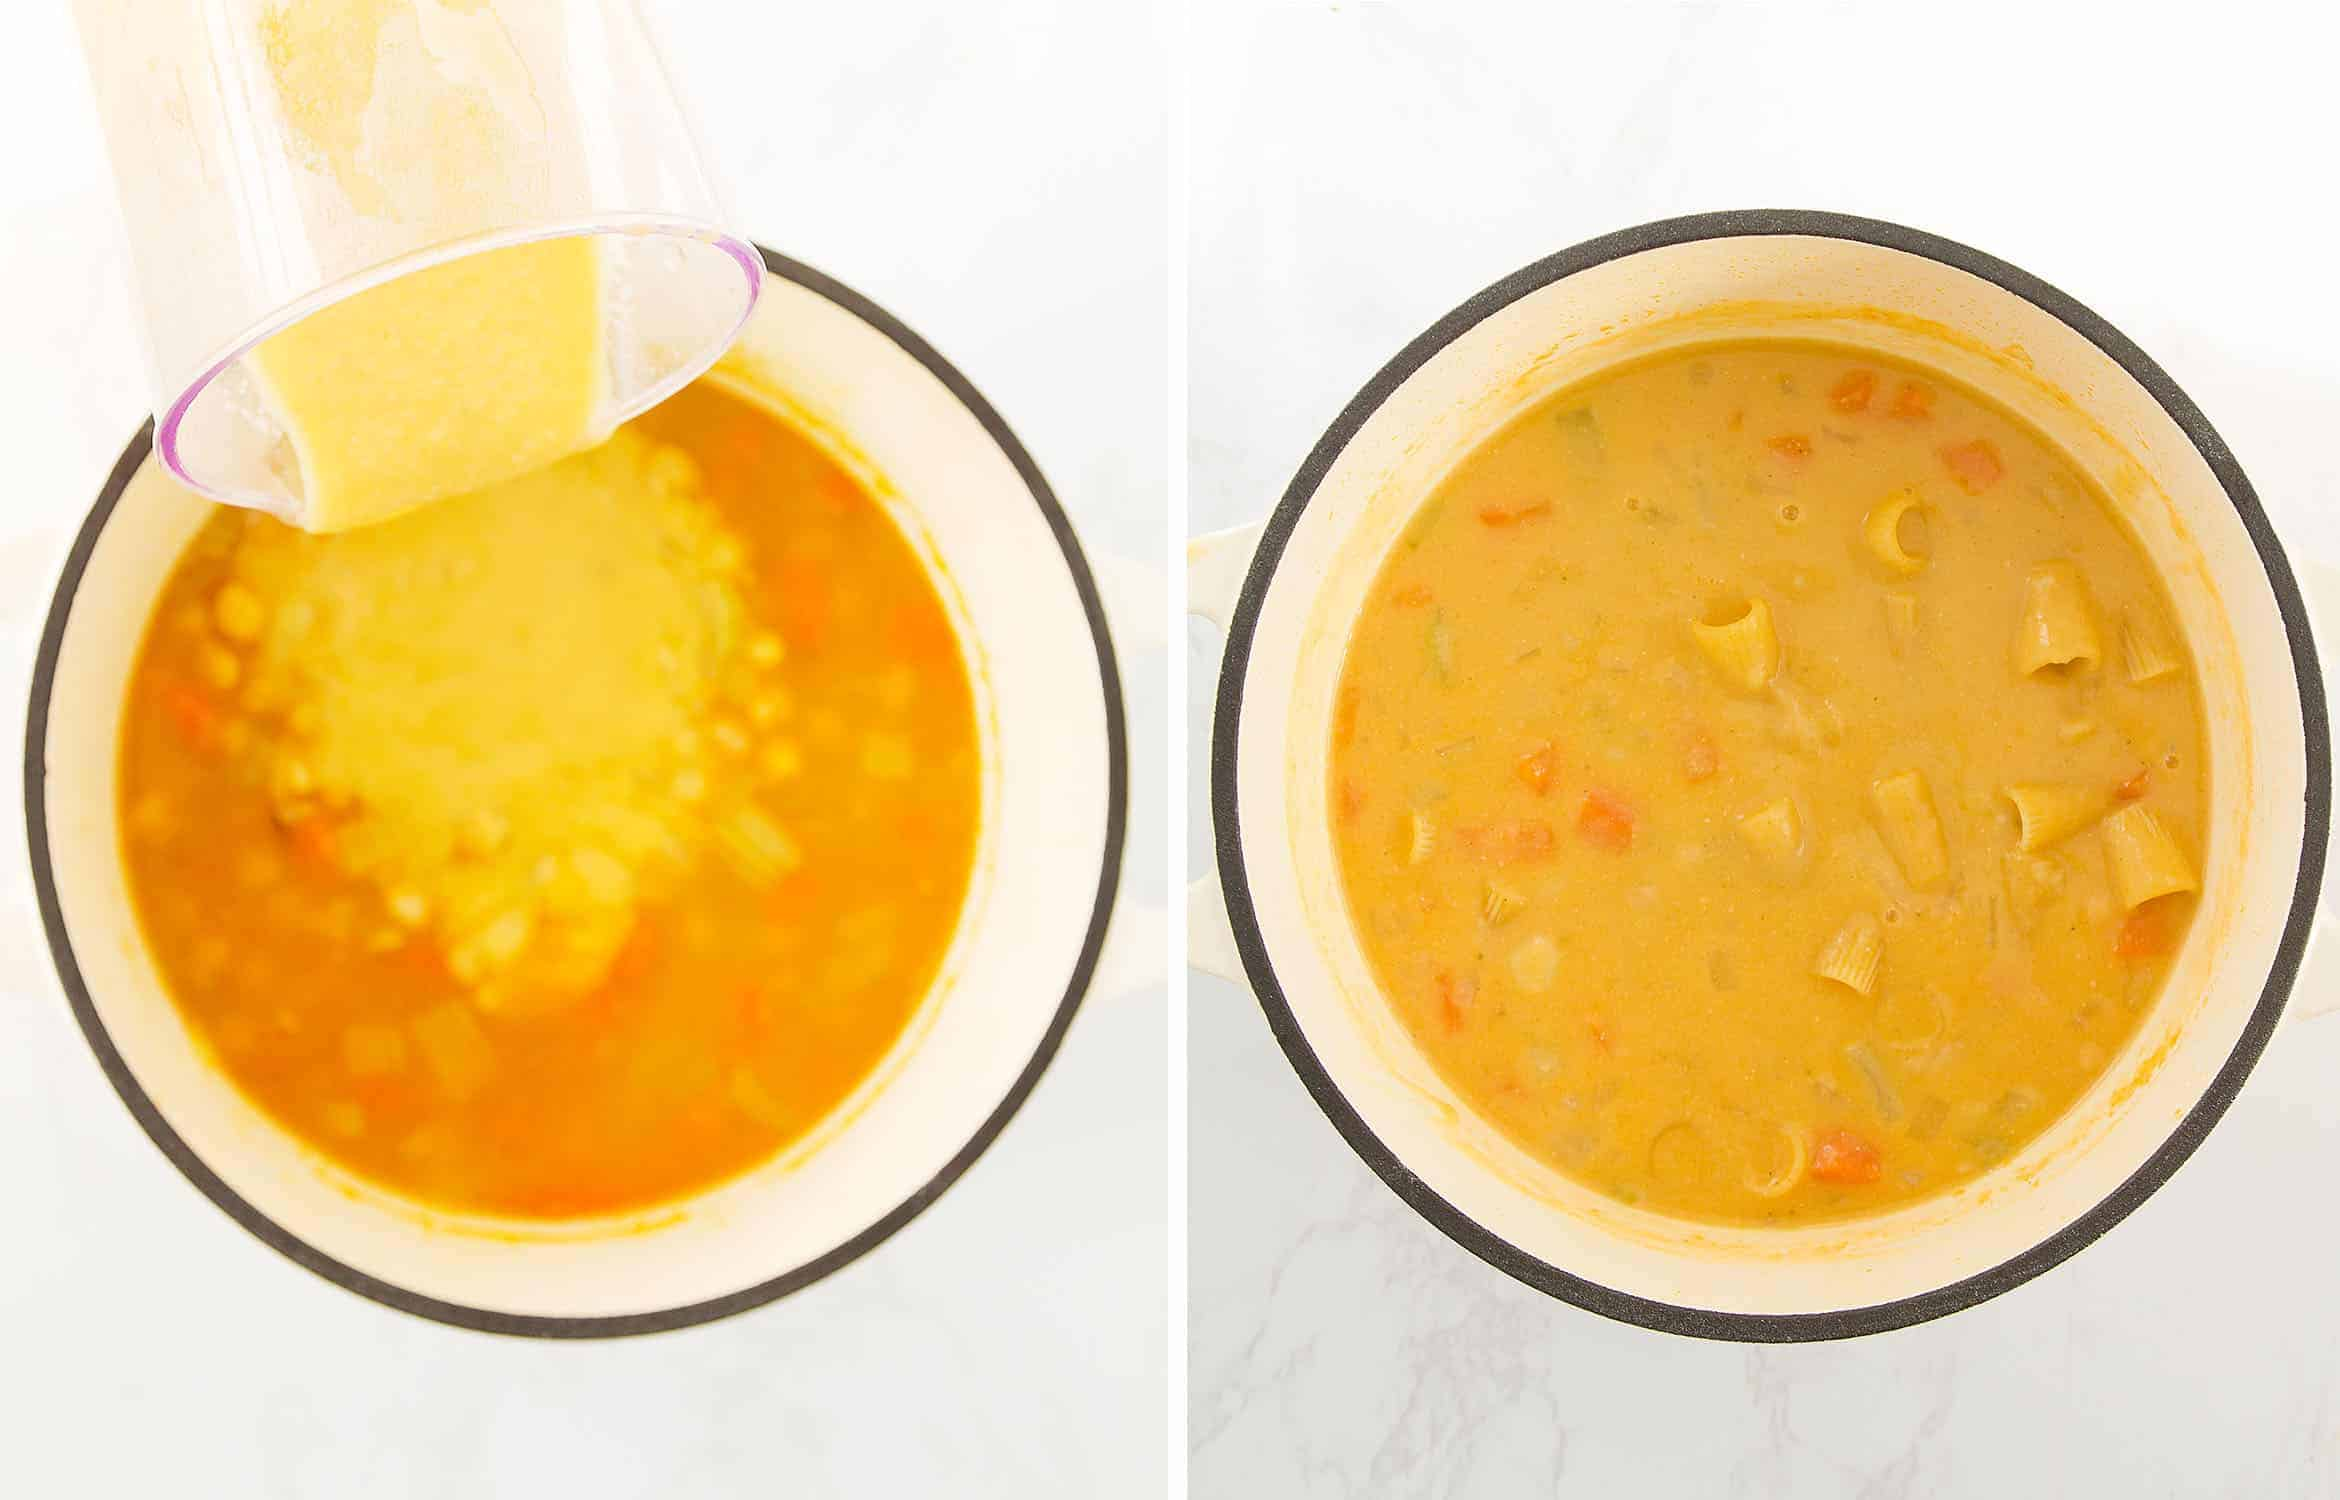 The first image shows the addition of blended soup to the pot. The second image shows the addition of pasta.